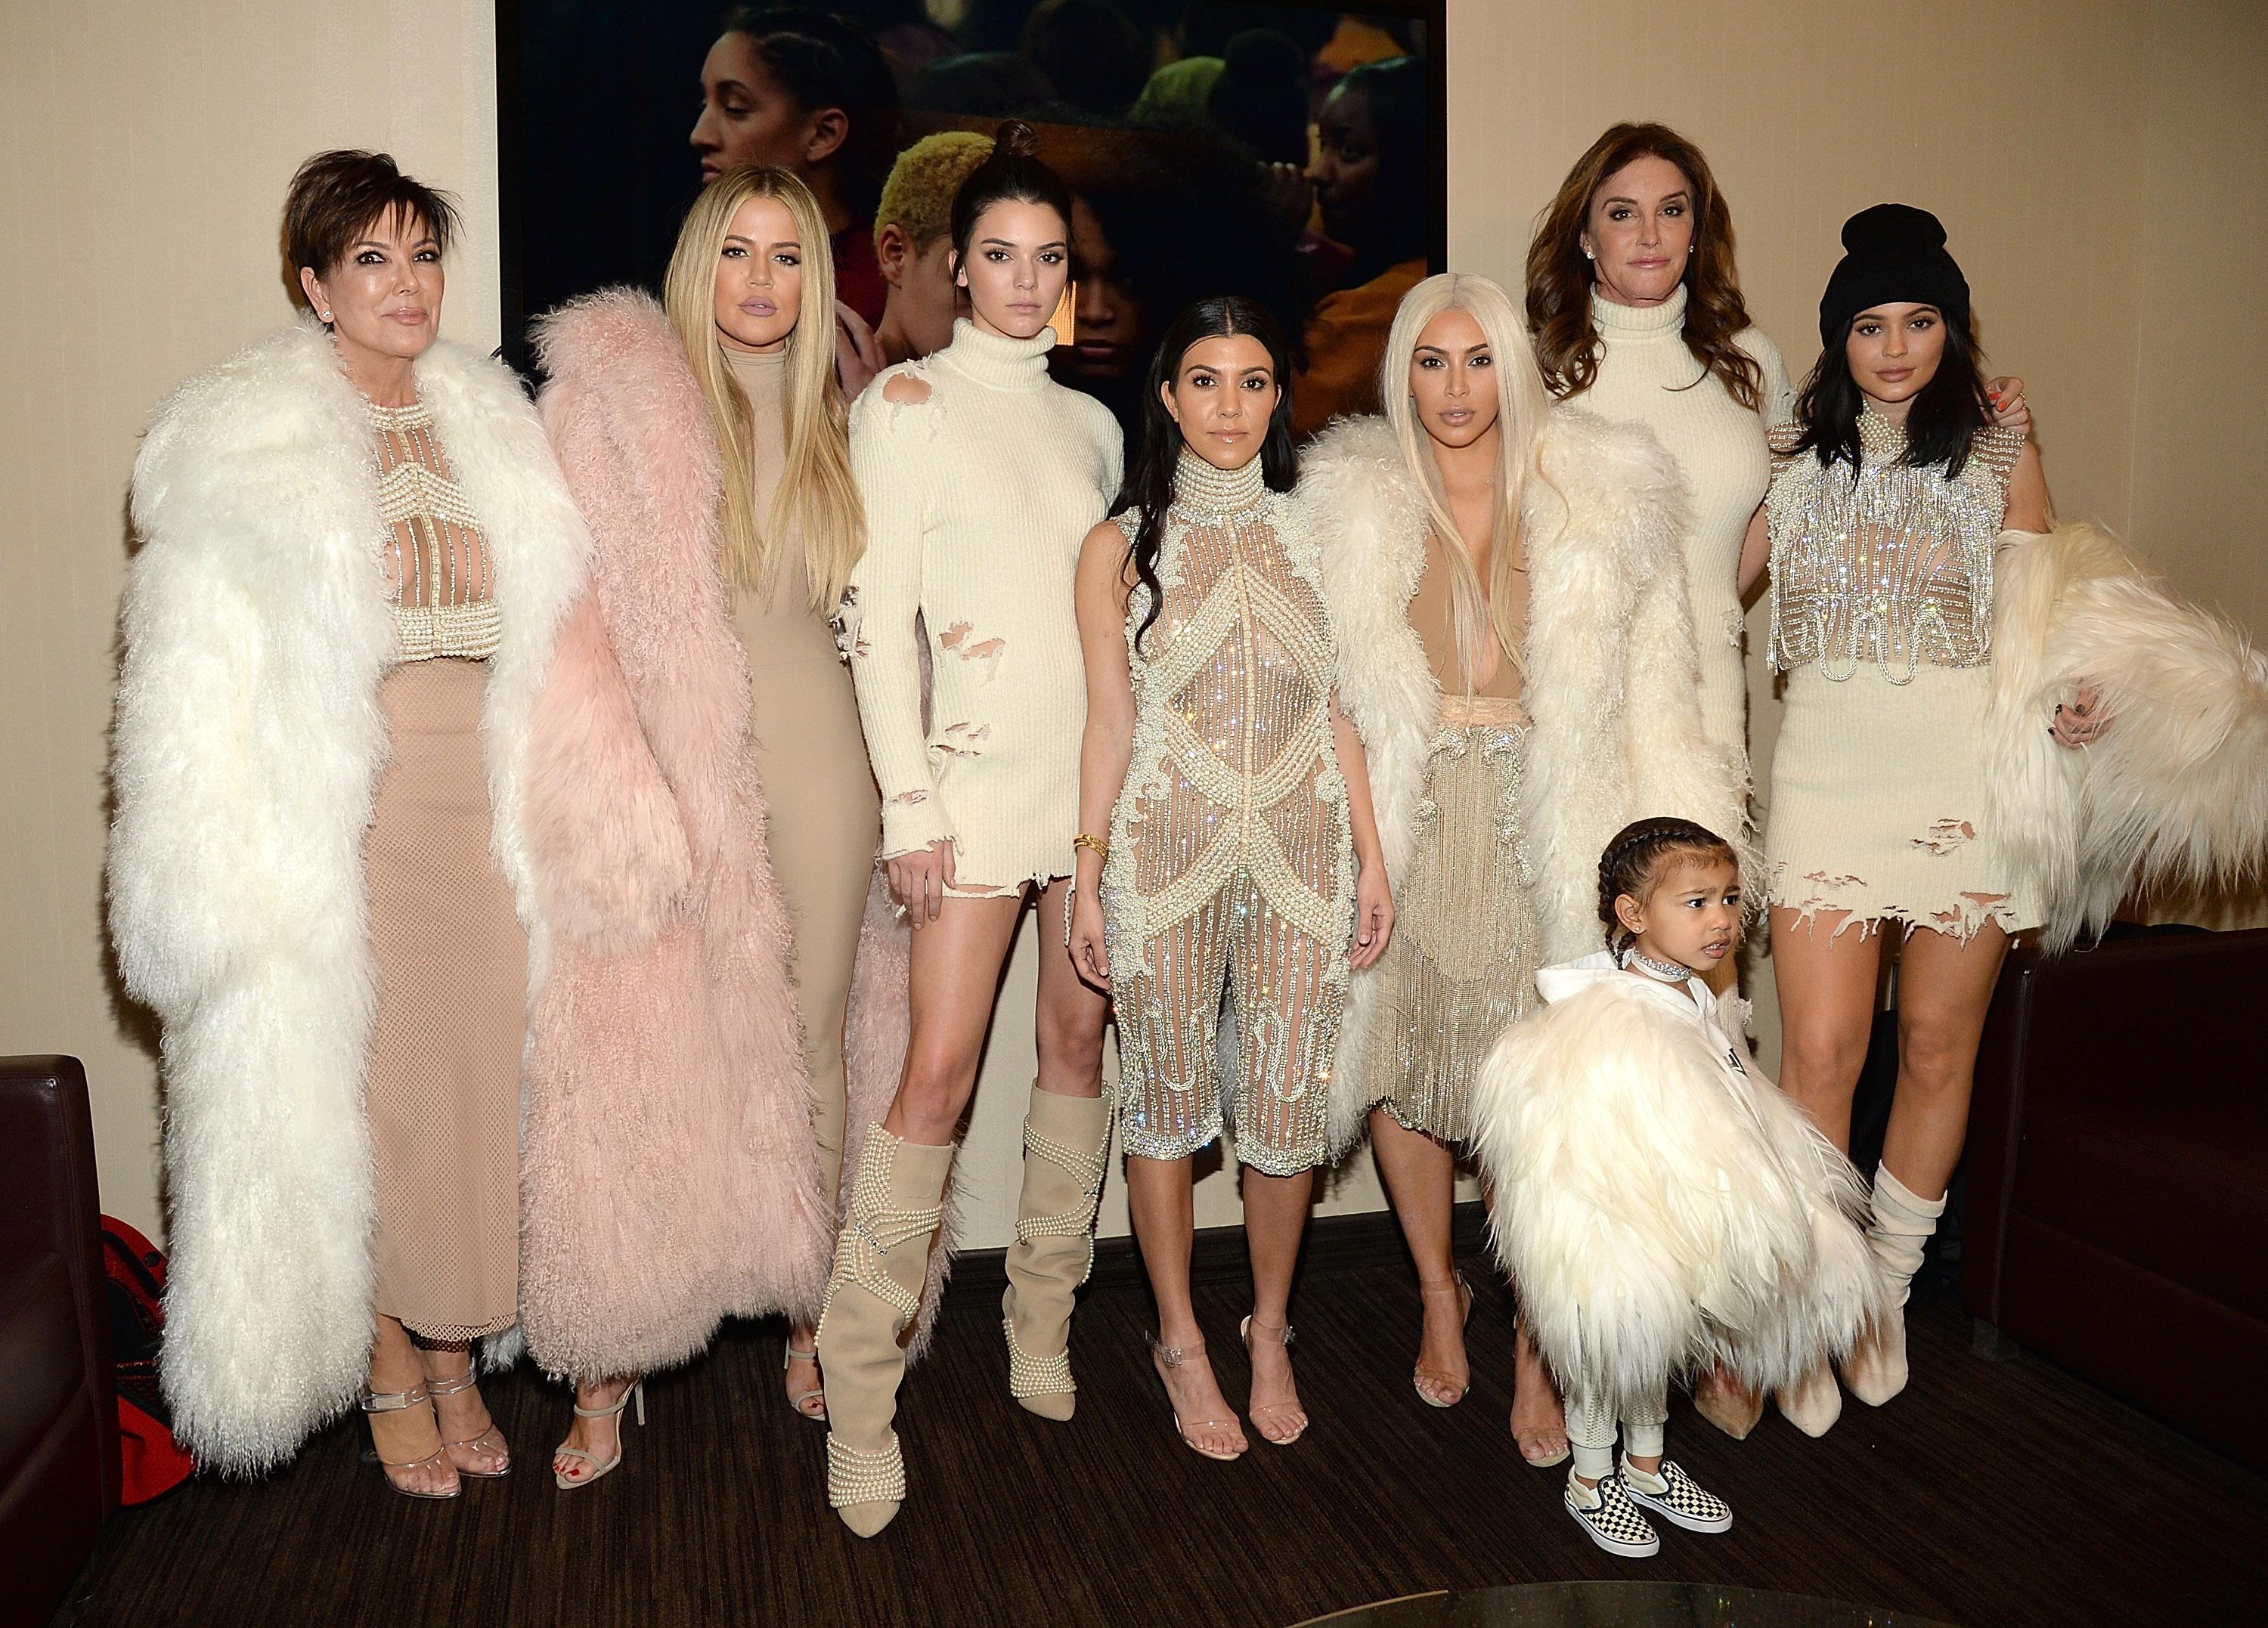 Three generations of Kardashians (and Caitlyn Jenner)